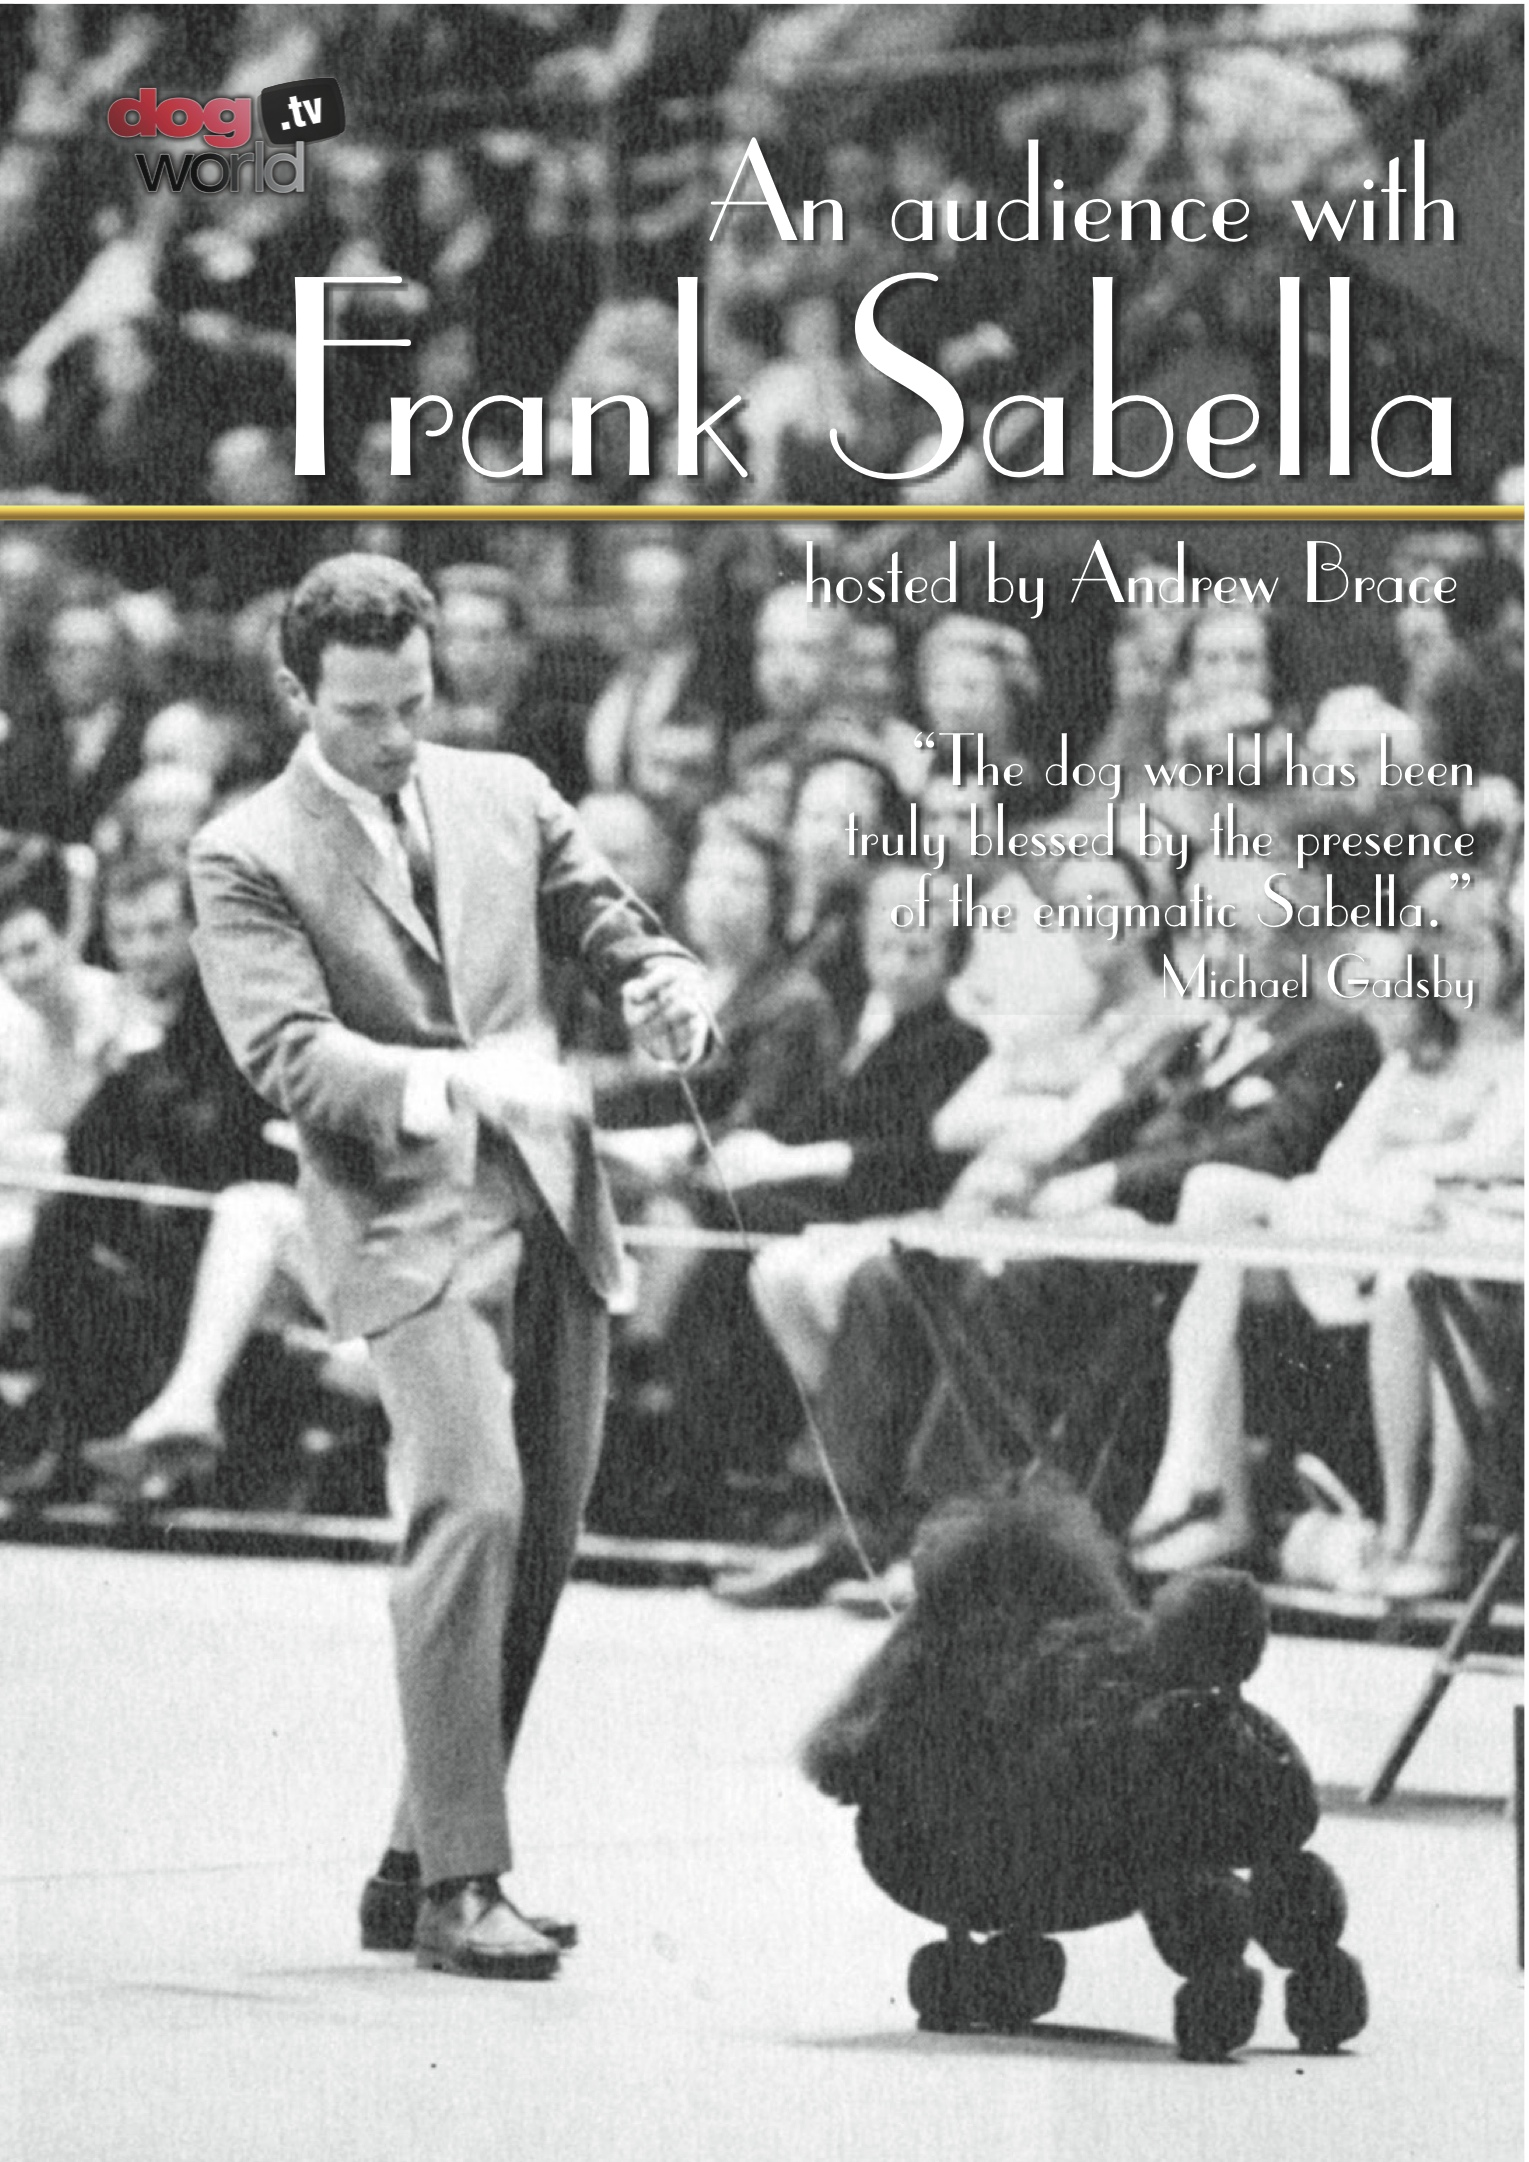 An Audience with... Frank Sabella (DVD)